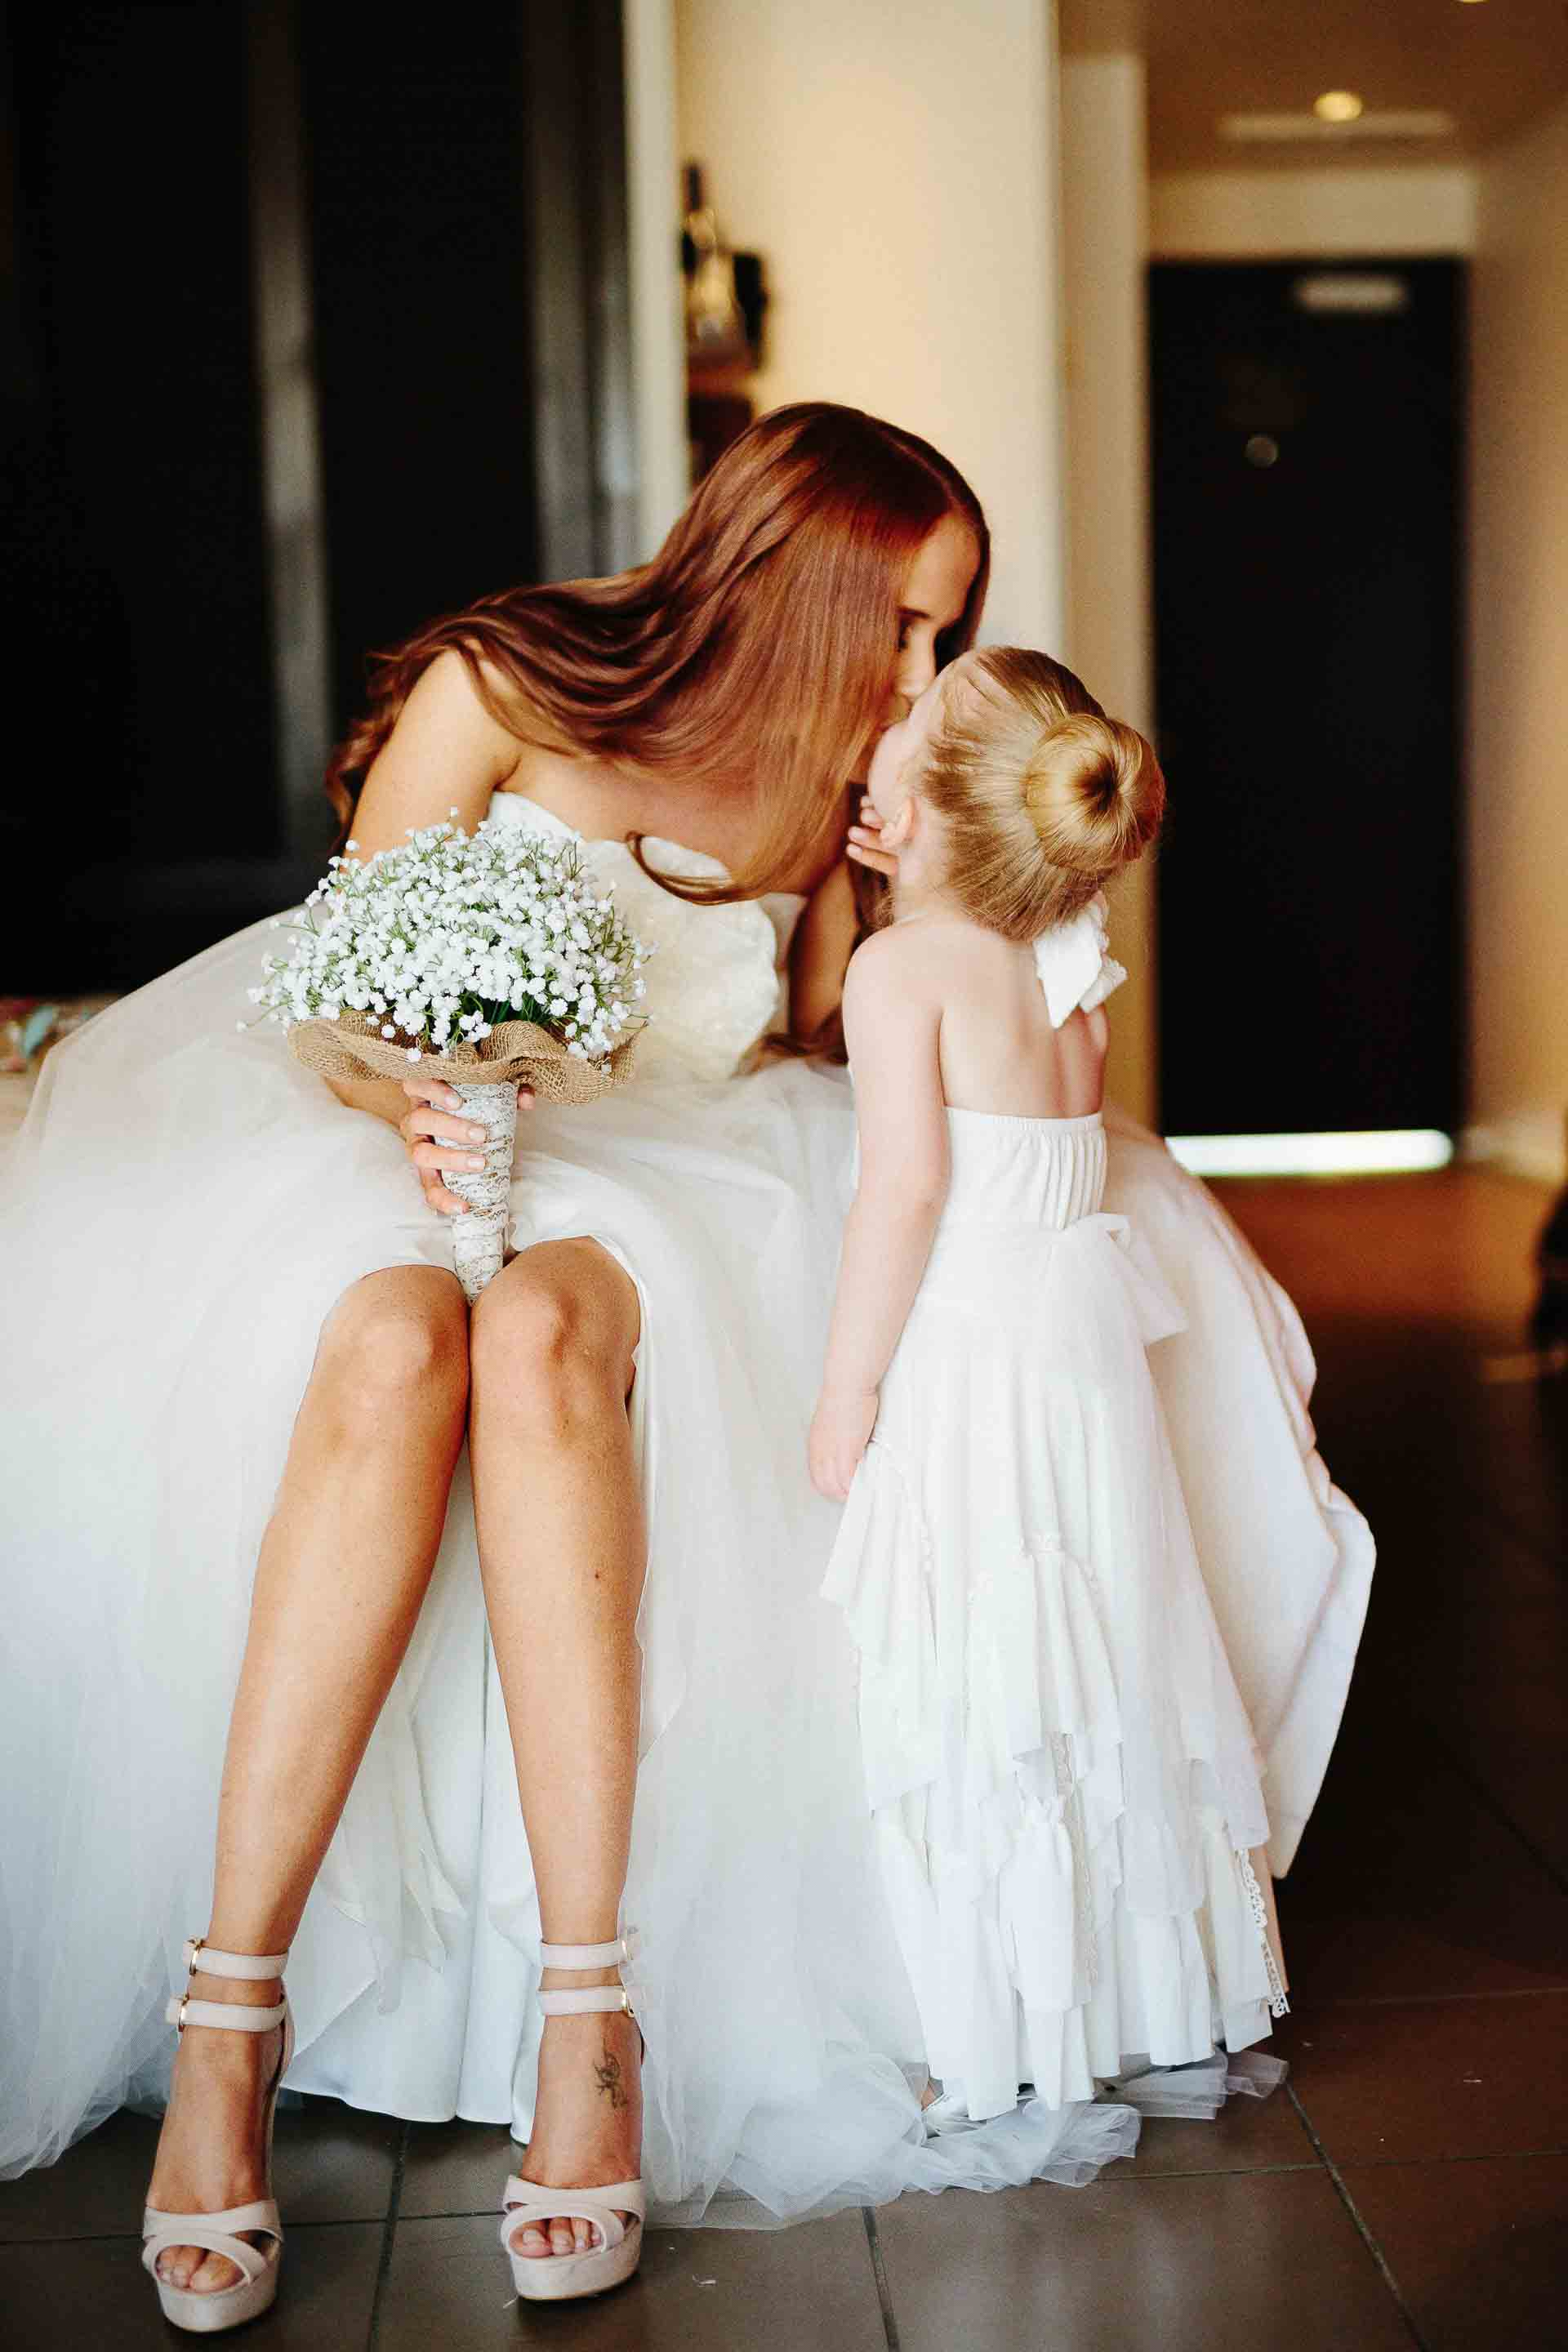 the bride receiving a kiss from the flower girl